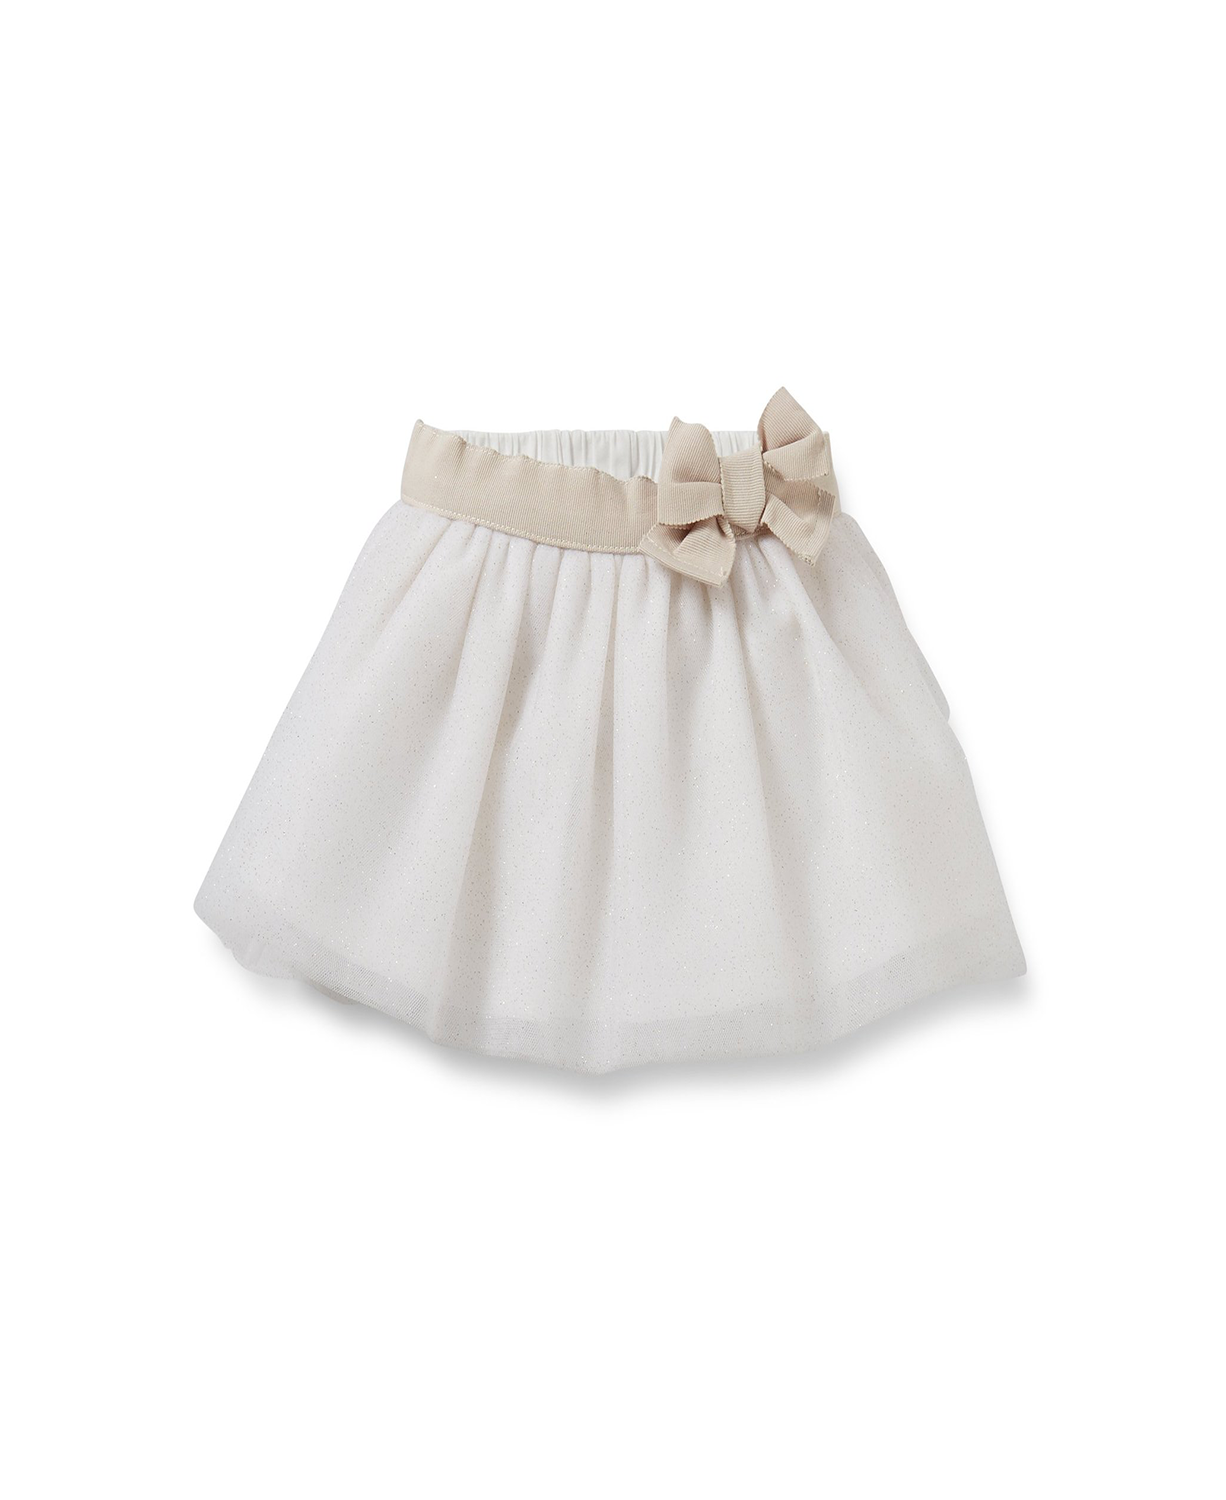 Well-known Cute Carter's Girl' Infant Baby Tutu Skirt (Baby) - Baby Clothes  GP56